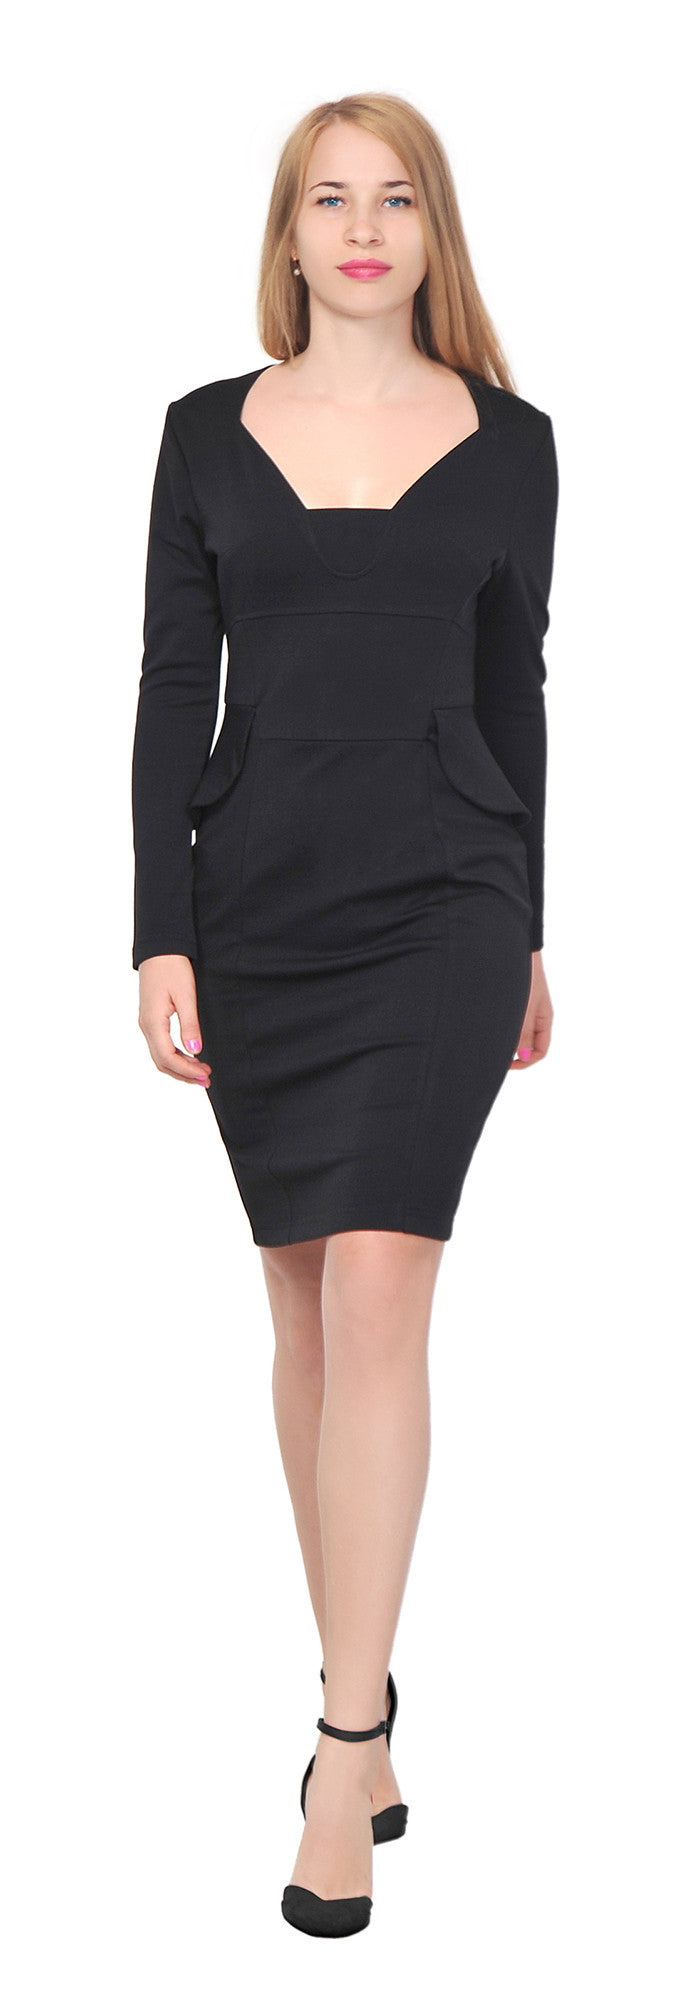 Women's Peplum long sleeve Pencil Knee length Dress